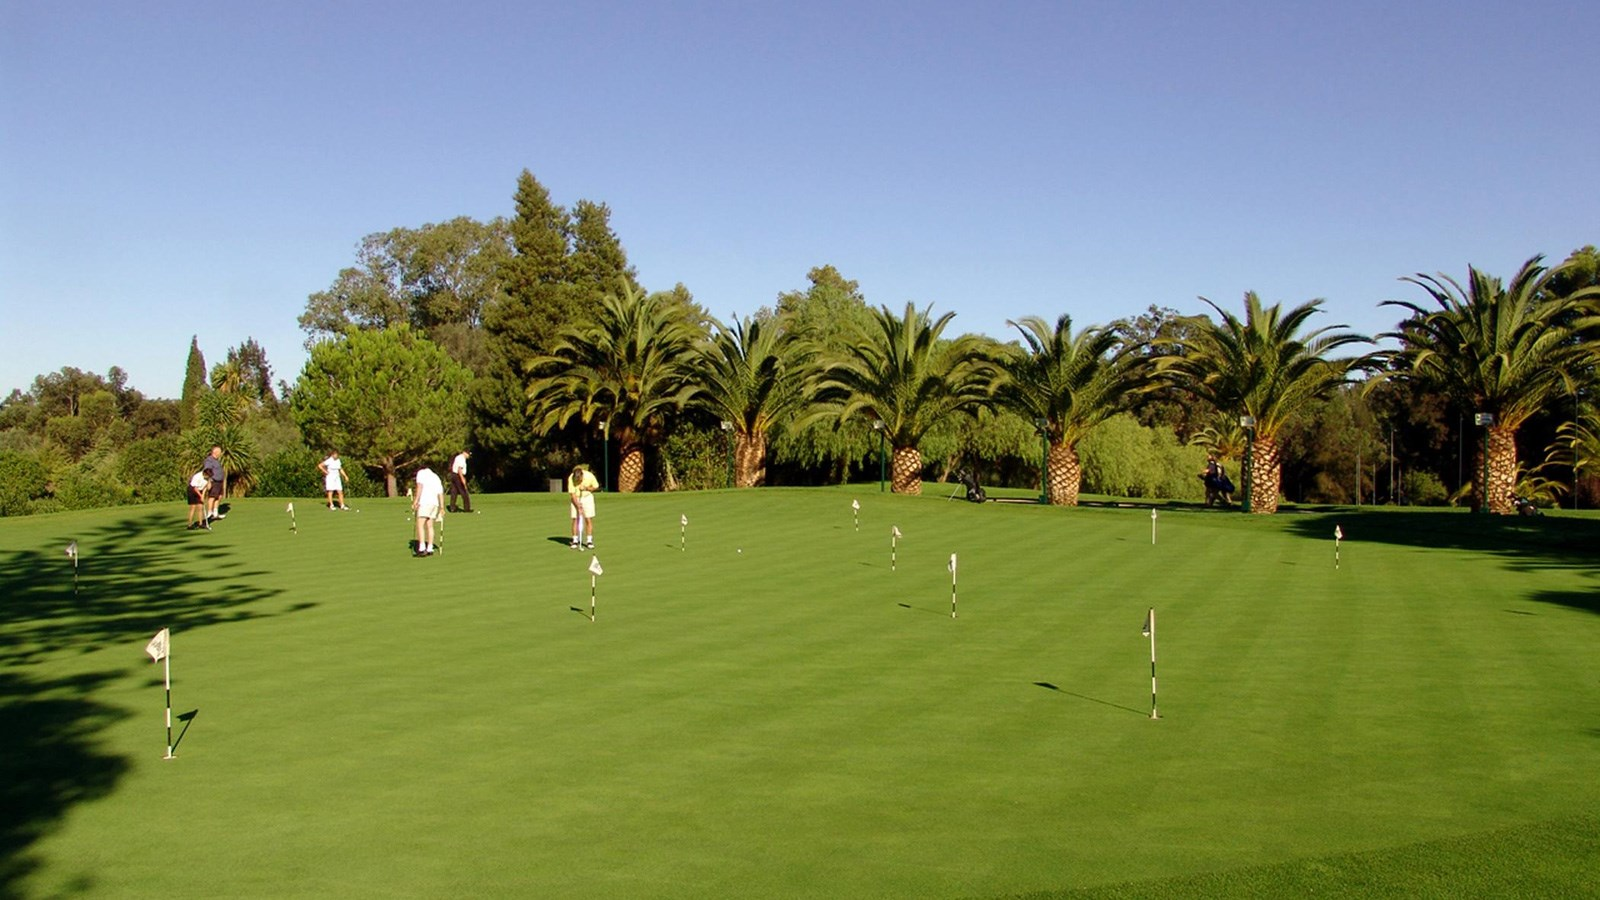 Putting Green at Penina Hotel and Golf Resort